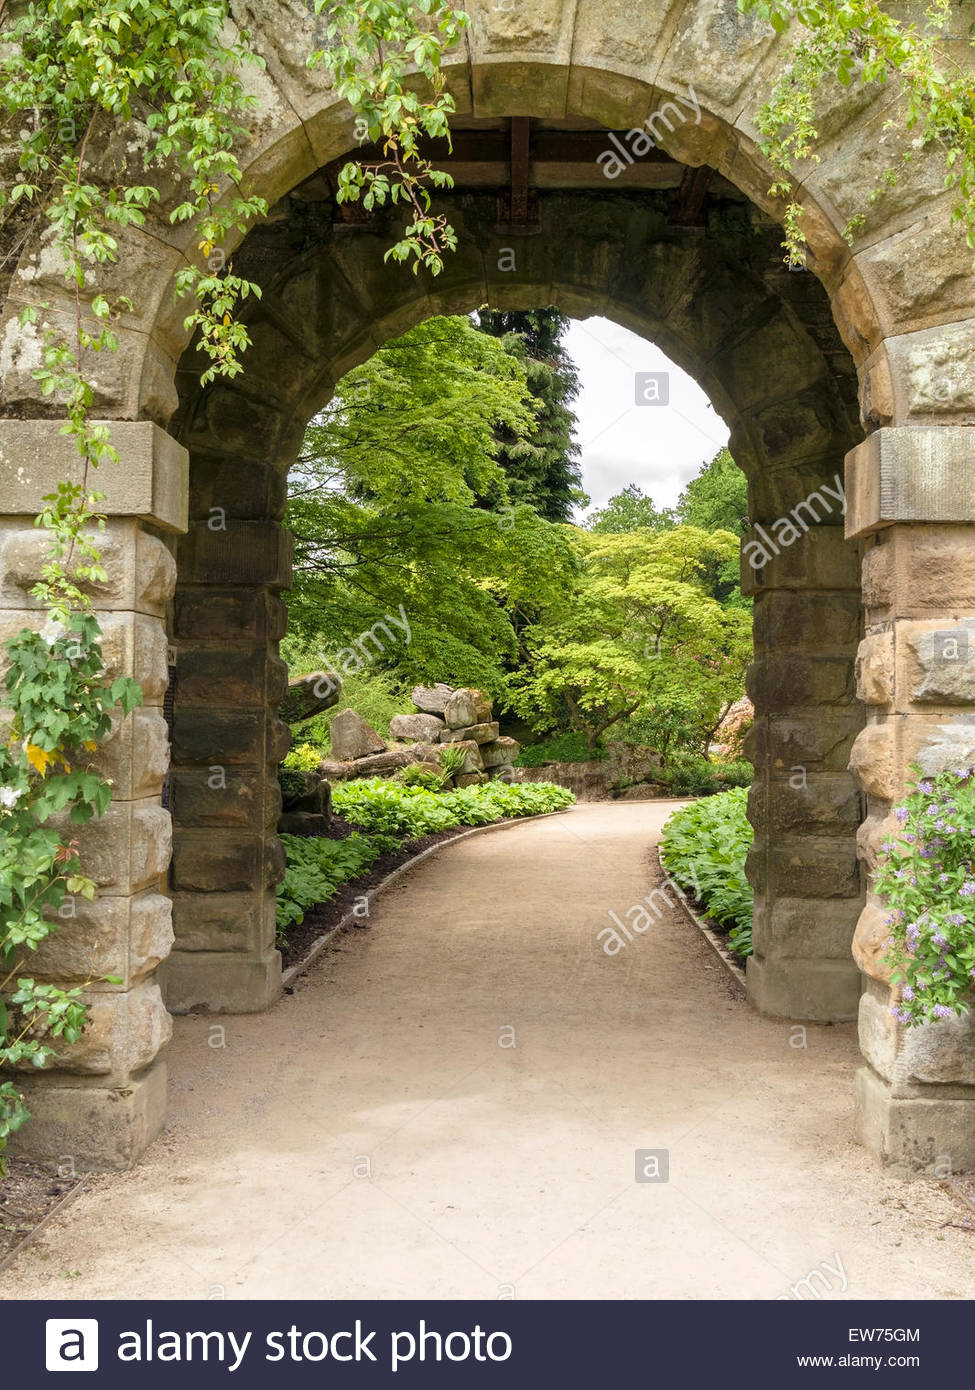 Archway entrance to Paxton's Rock Garden, Chatsworth, Derbyshire, England, UK. - Stock Image